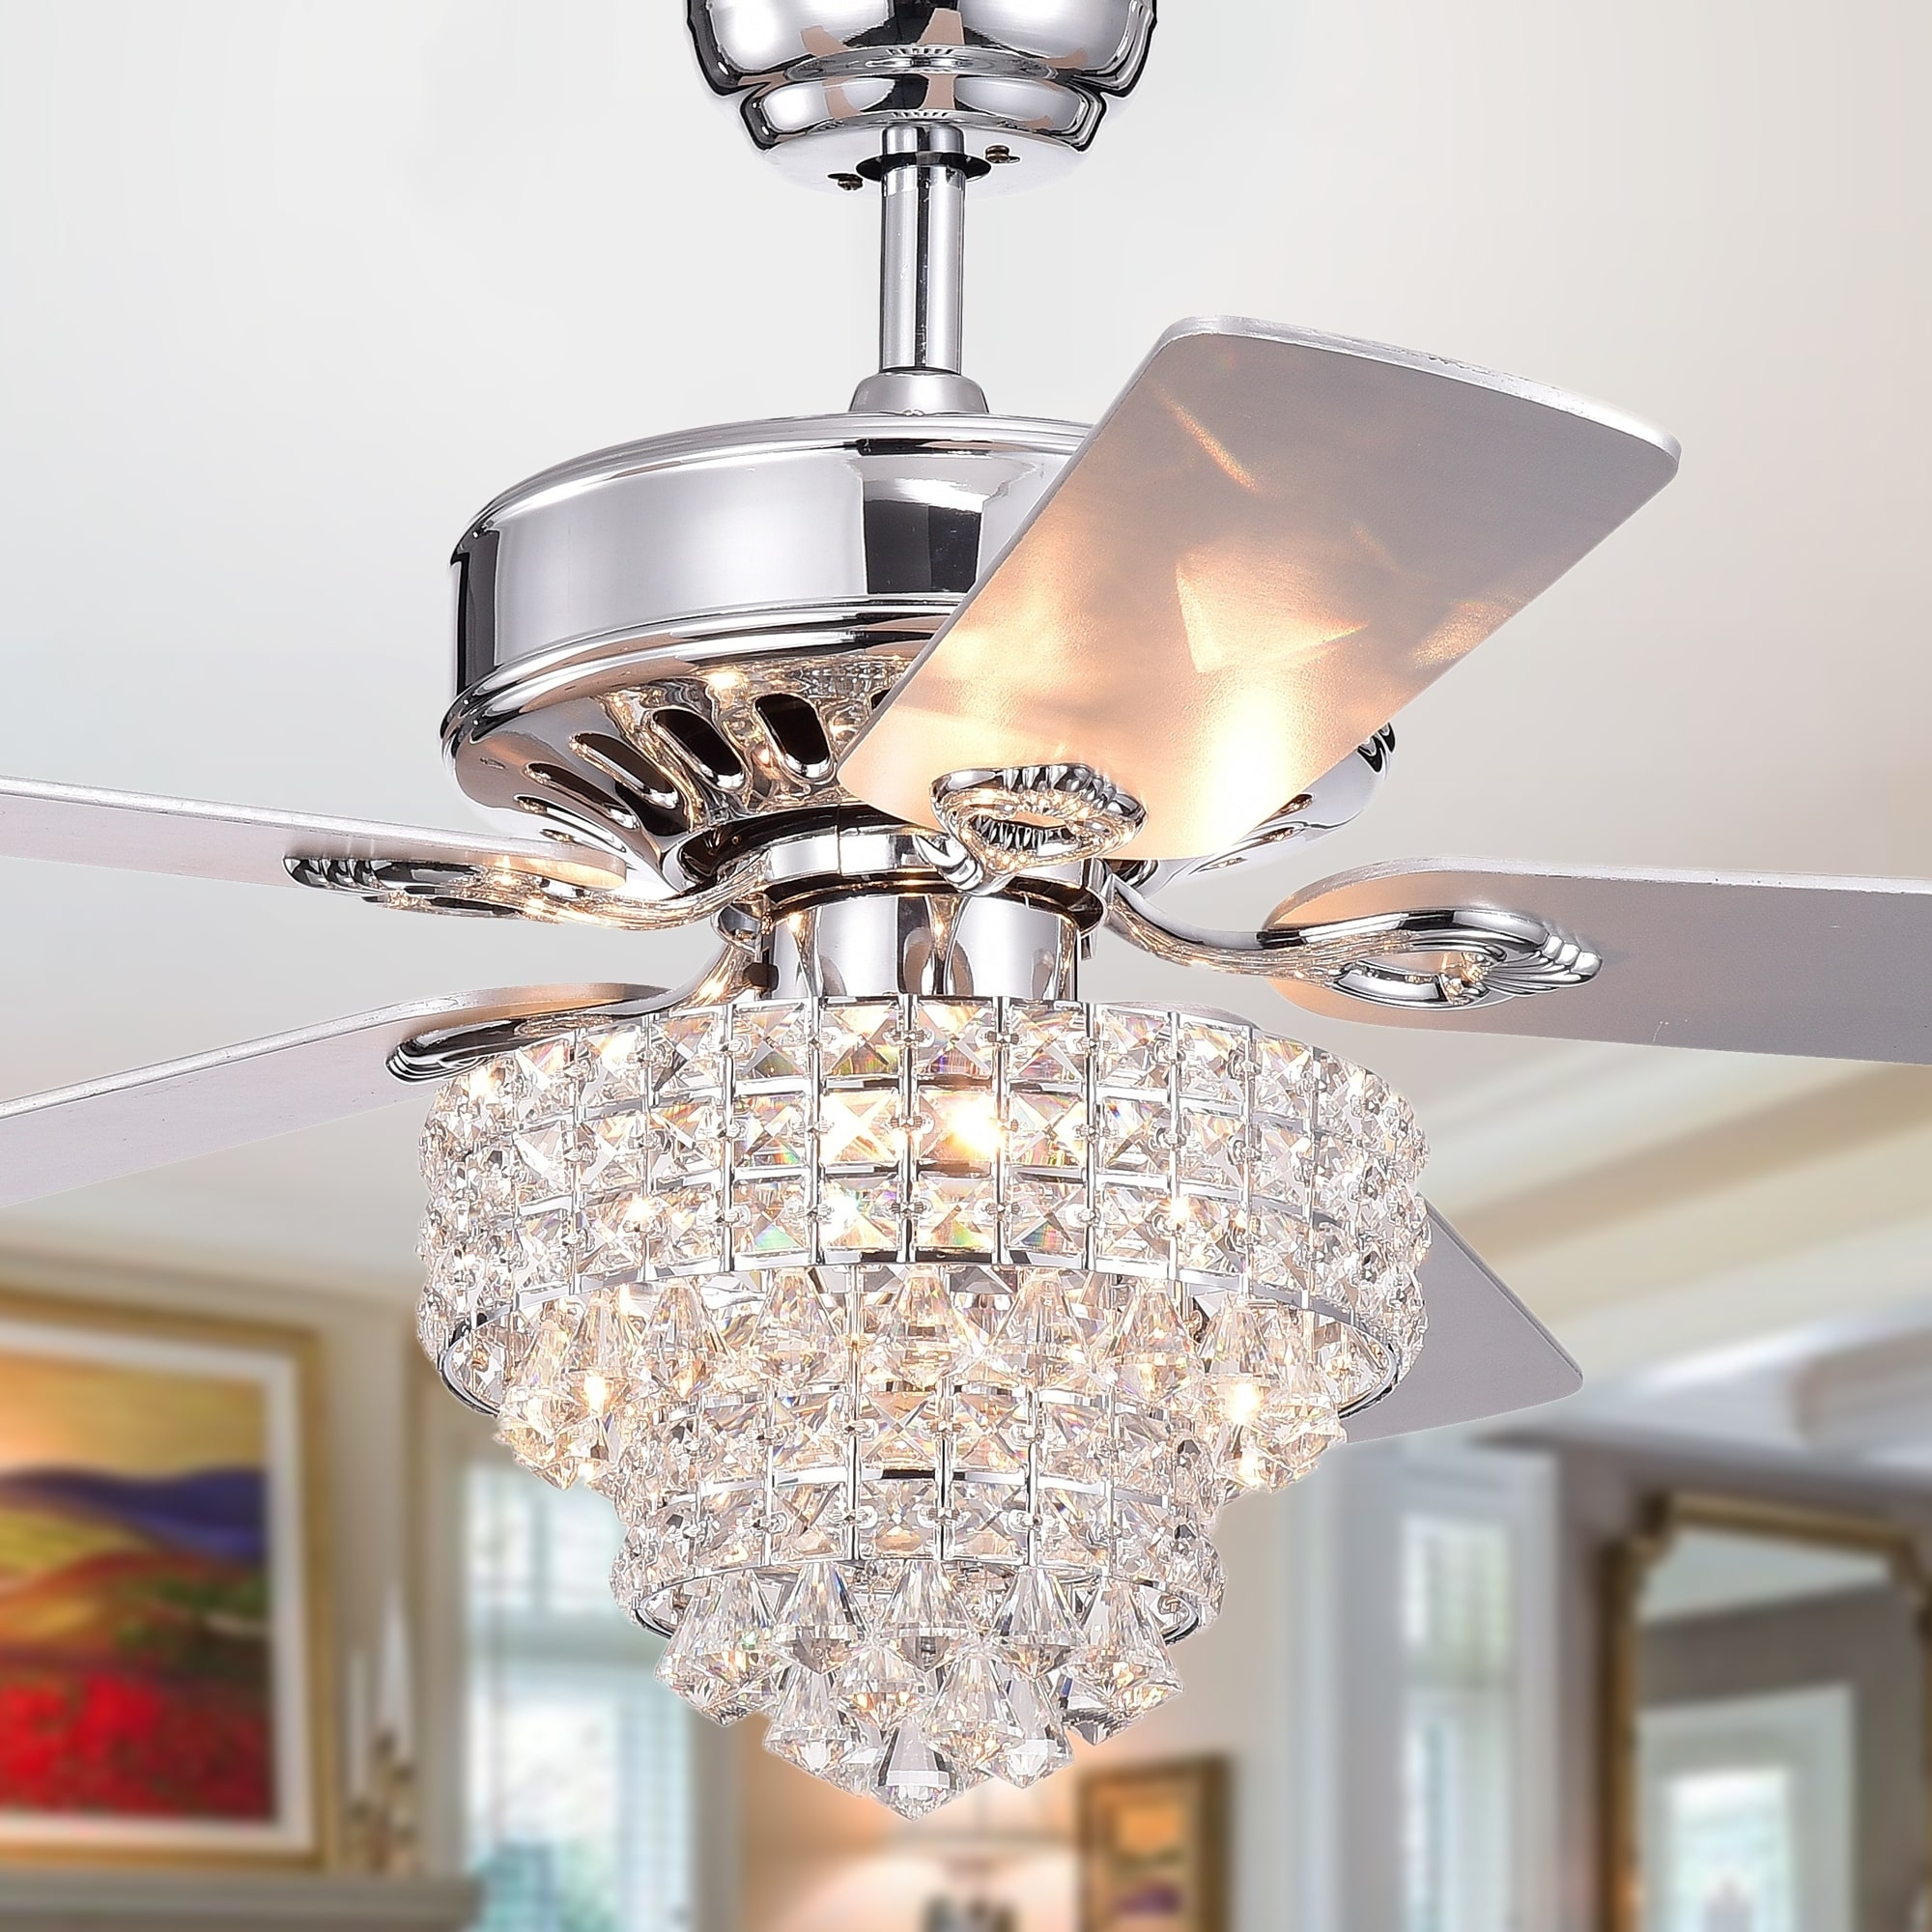 Shop Bryanya 5 Blade 52 Inch Chrome Lighted Ceiling Fans With